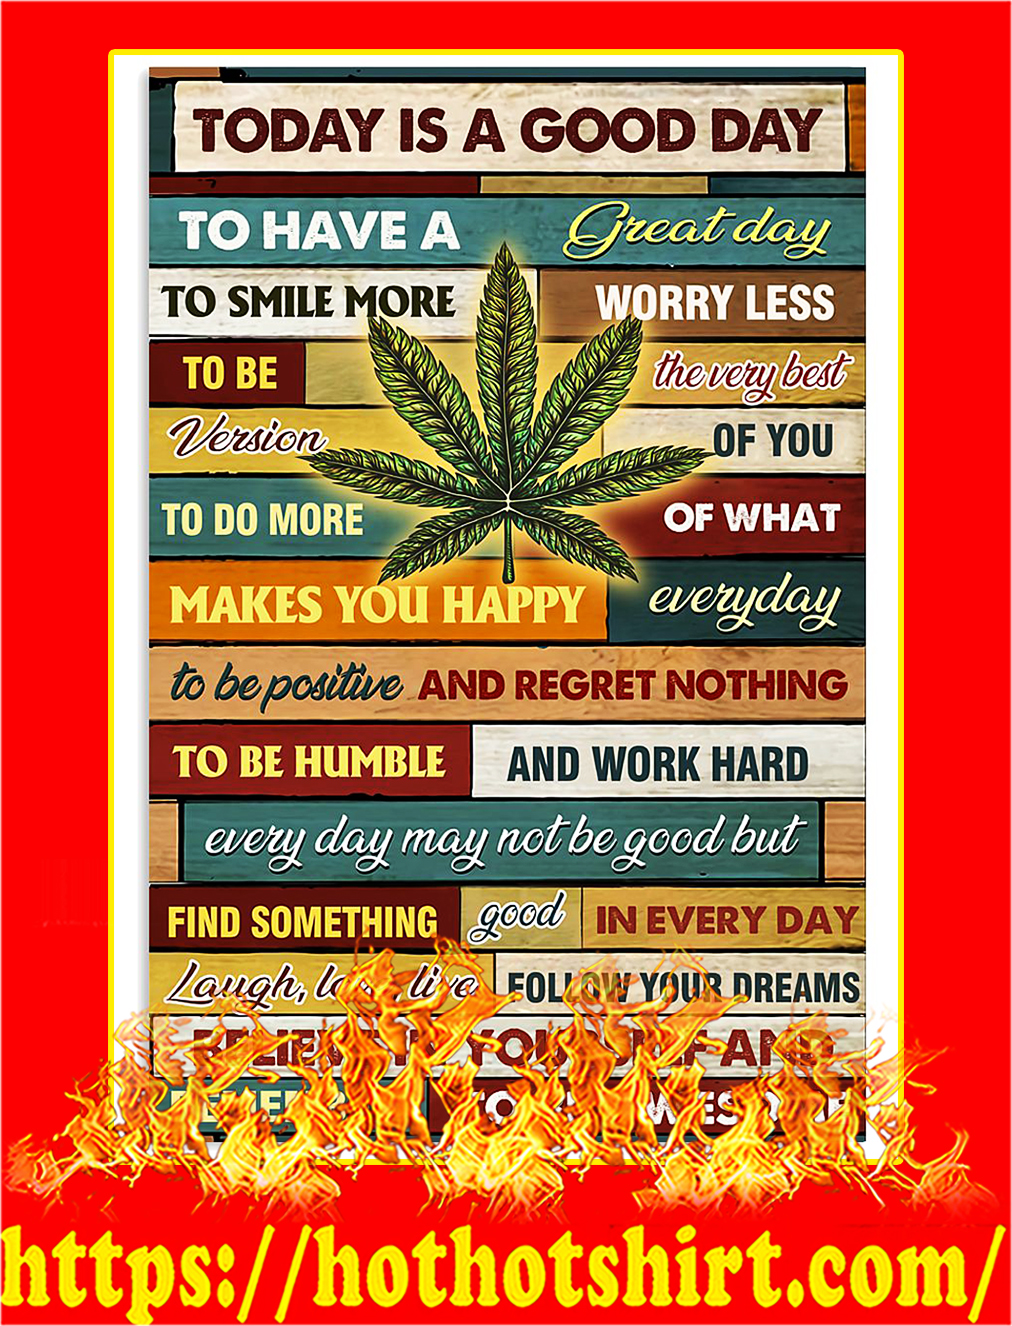 Weed cannabis today is a good day poster - A4